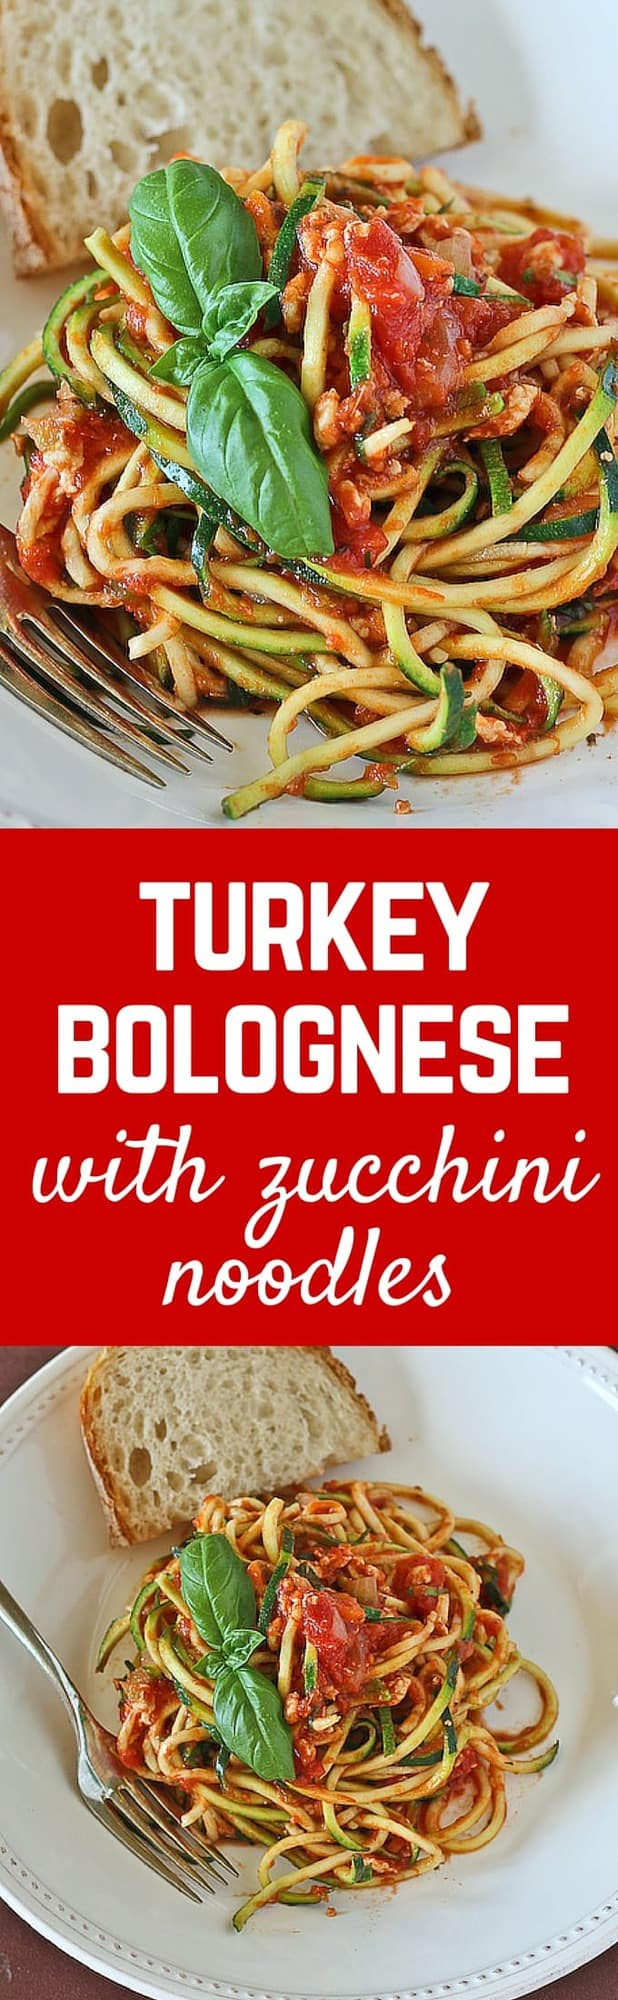 Turkey Bolognese with Zucchini Noodles {gluten free}Rachel Cooks